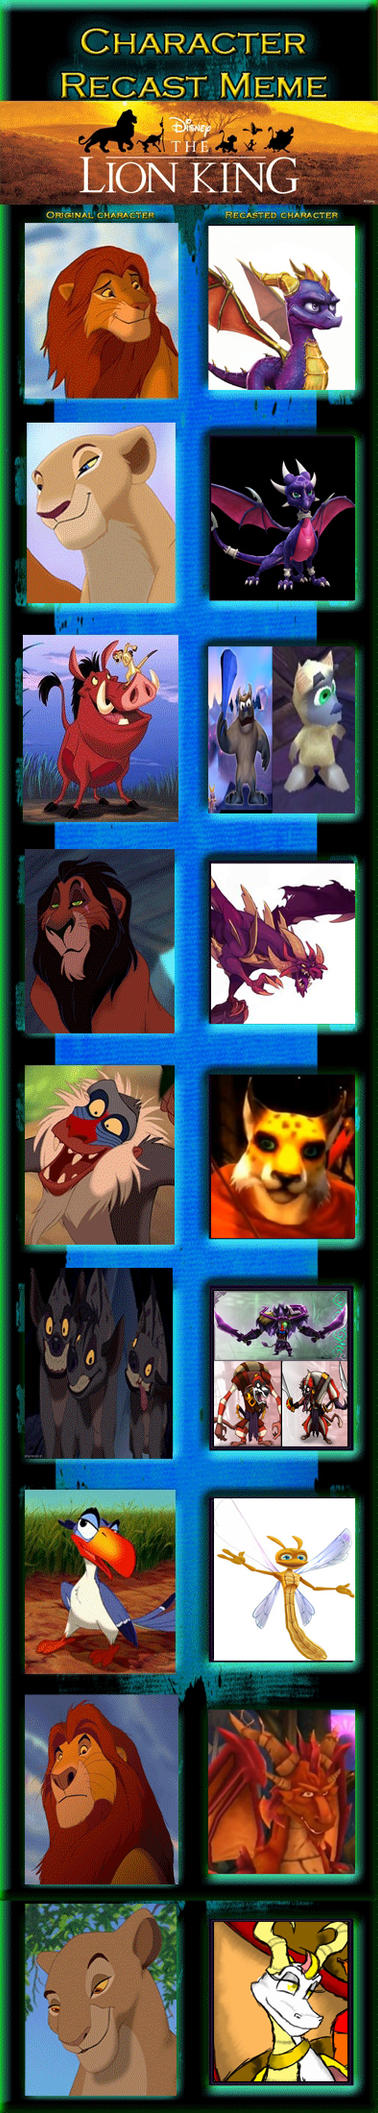 The Lion King Recast by RDJ1995